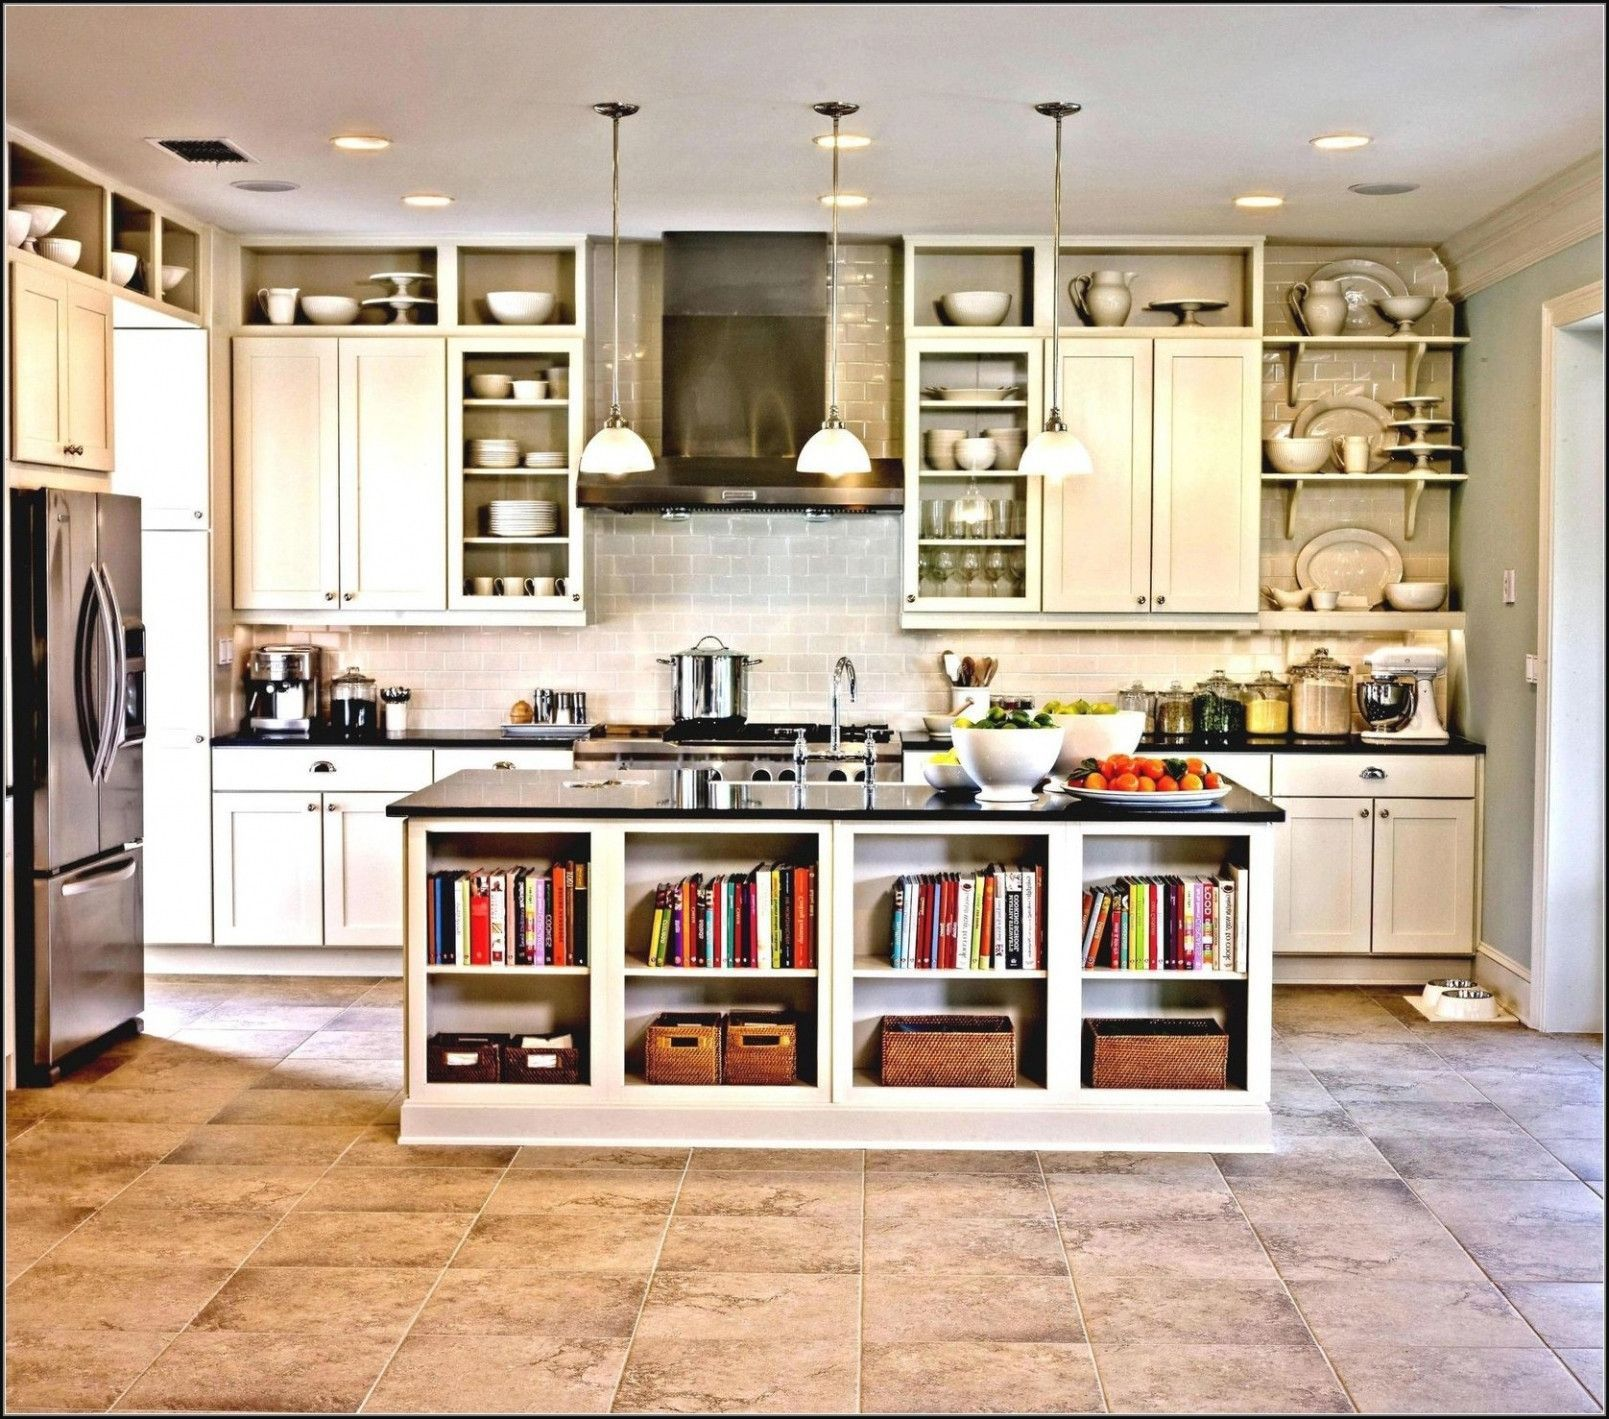 Kitchen Cabinets Replacement: Shapely Kitchen Cabinet Replacement Shelves